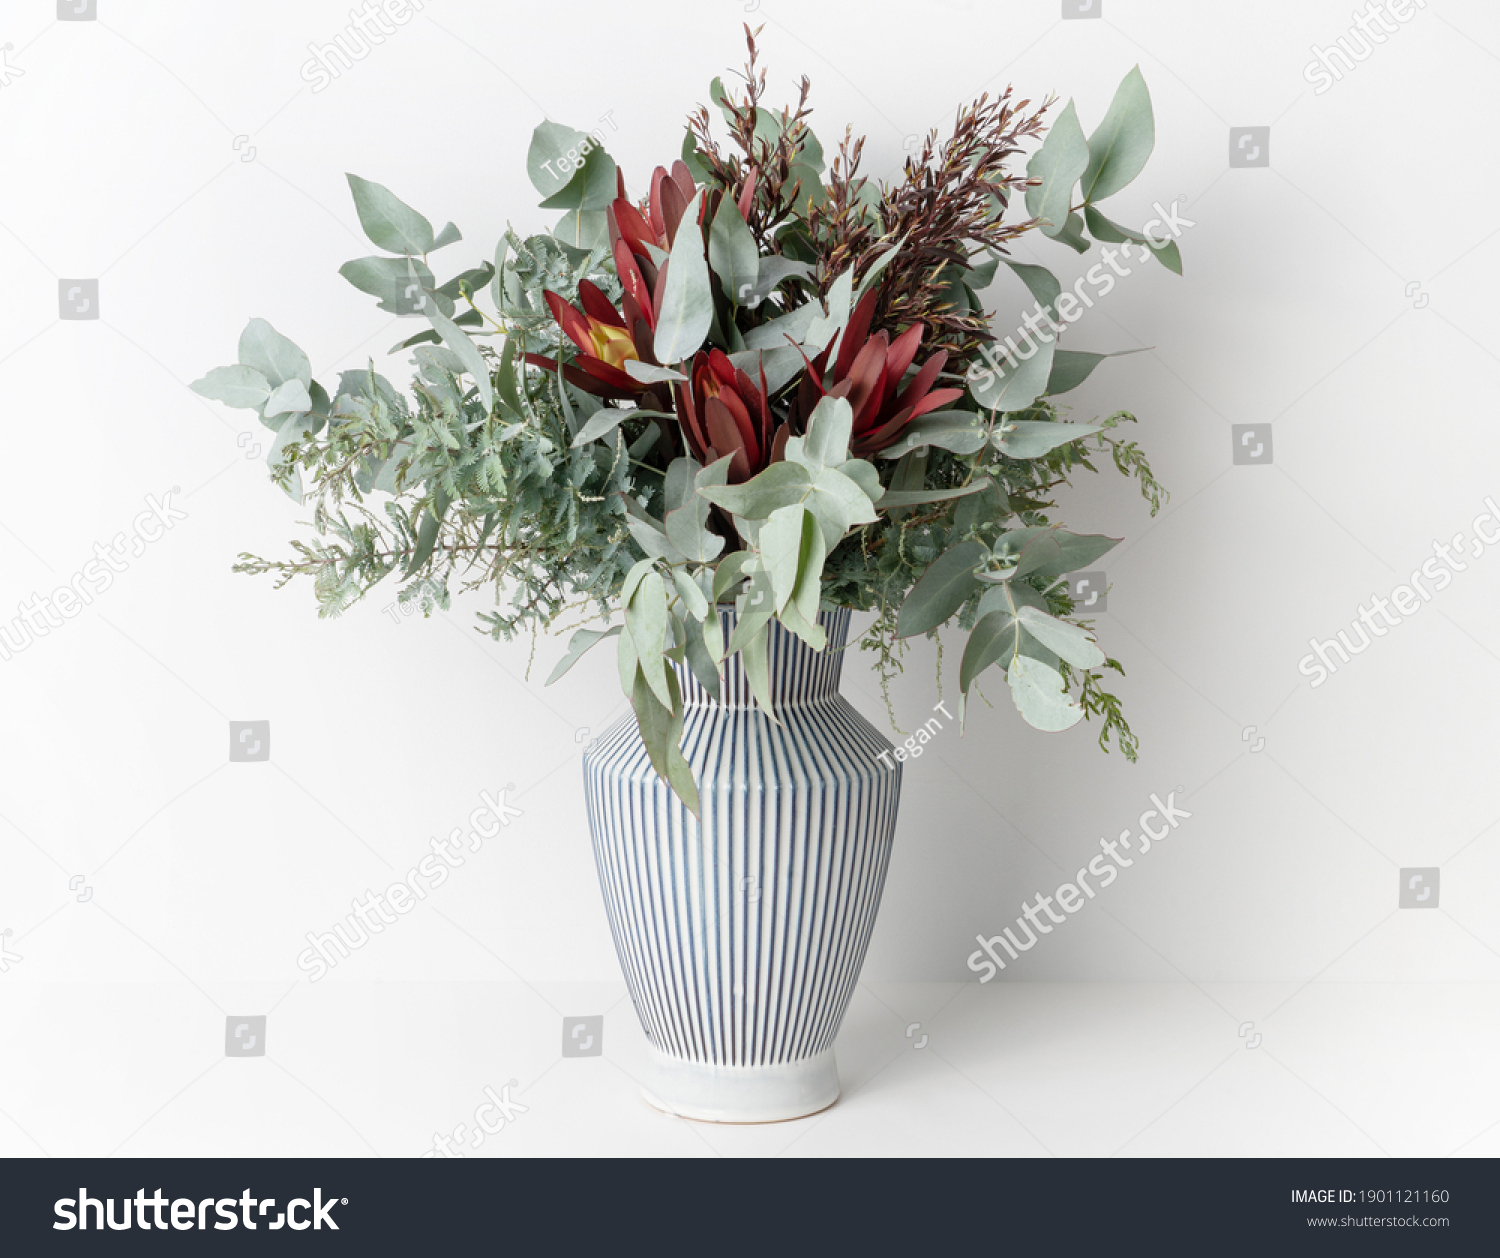 Beautiful flower arrangement of mostly Australian native flowers, including, Silvan Reds, Wattle foliage and Eucalyptus leaves, in a white and blue strip vase, with a white background. #1901121160